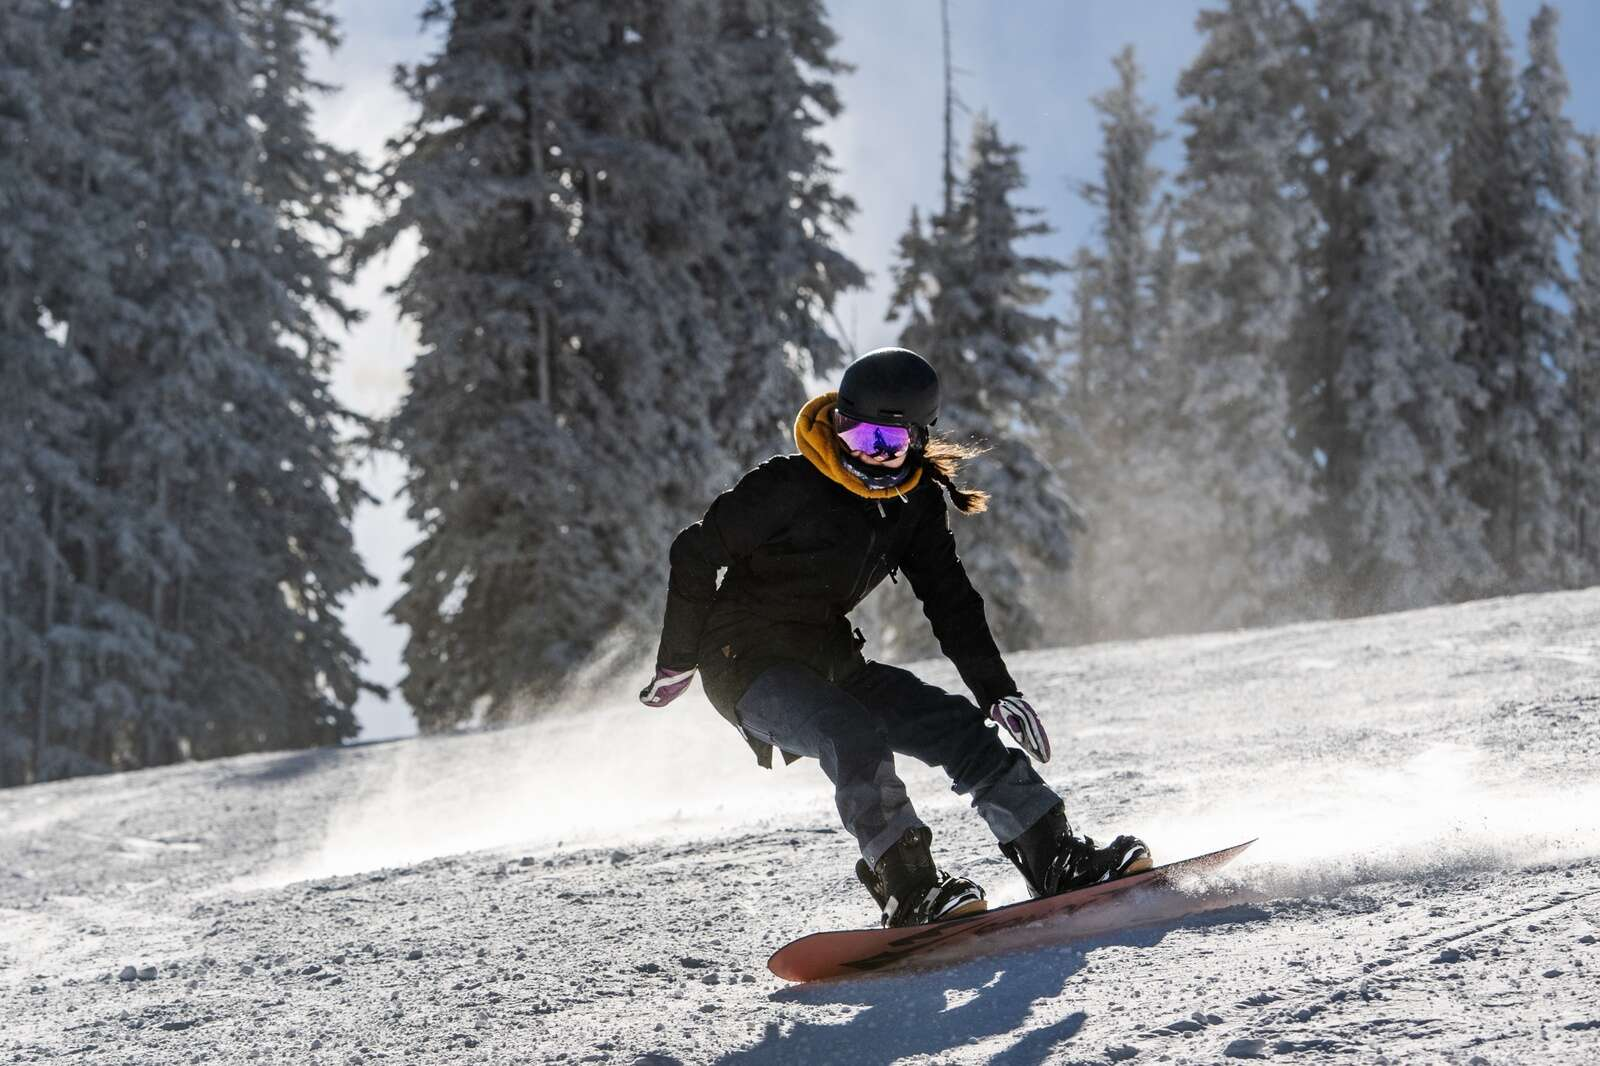 A snowboarder carves on opening day at Aspen Mountain on Wednesday, Nov. 25, 2020. (Kelsey Brunner/The Aspen Times)